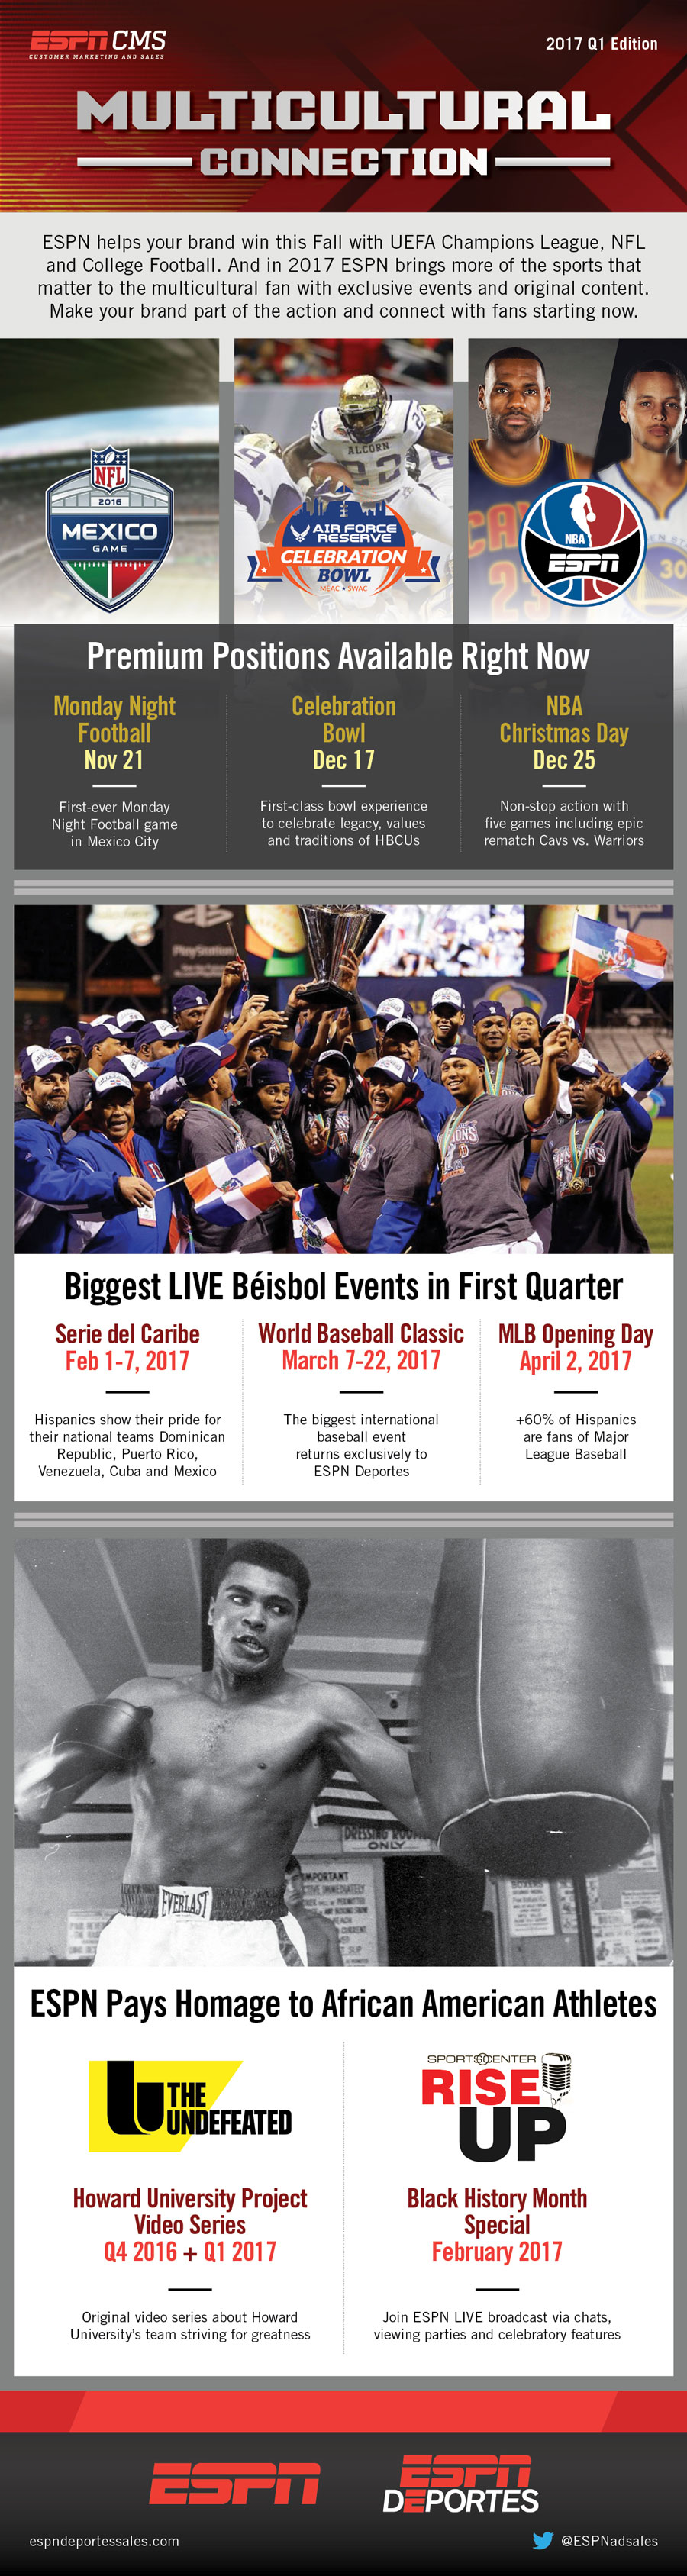 ESPNCMS Stream - Multicultural Connection 2017 Q1